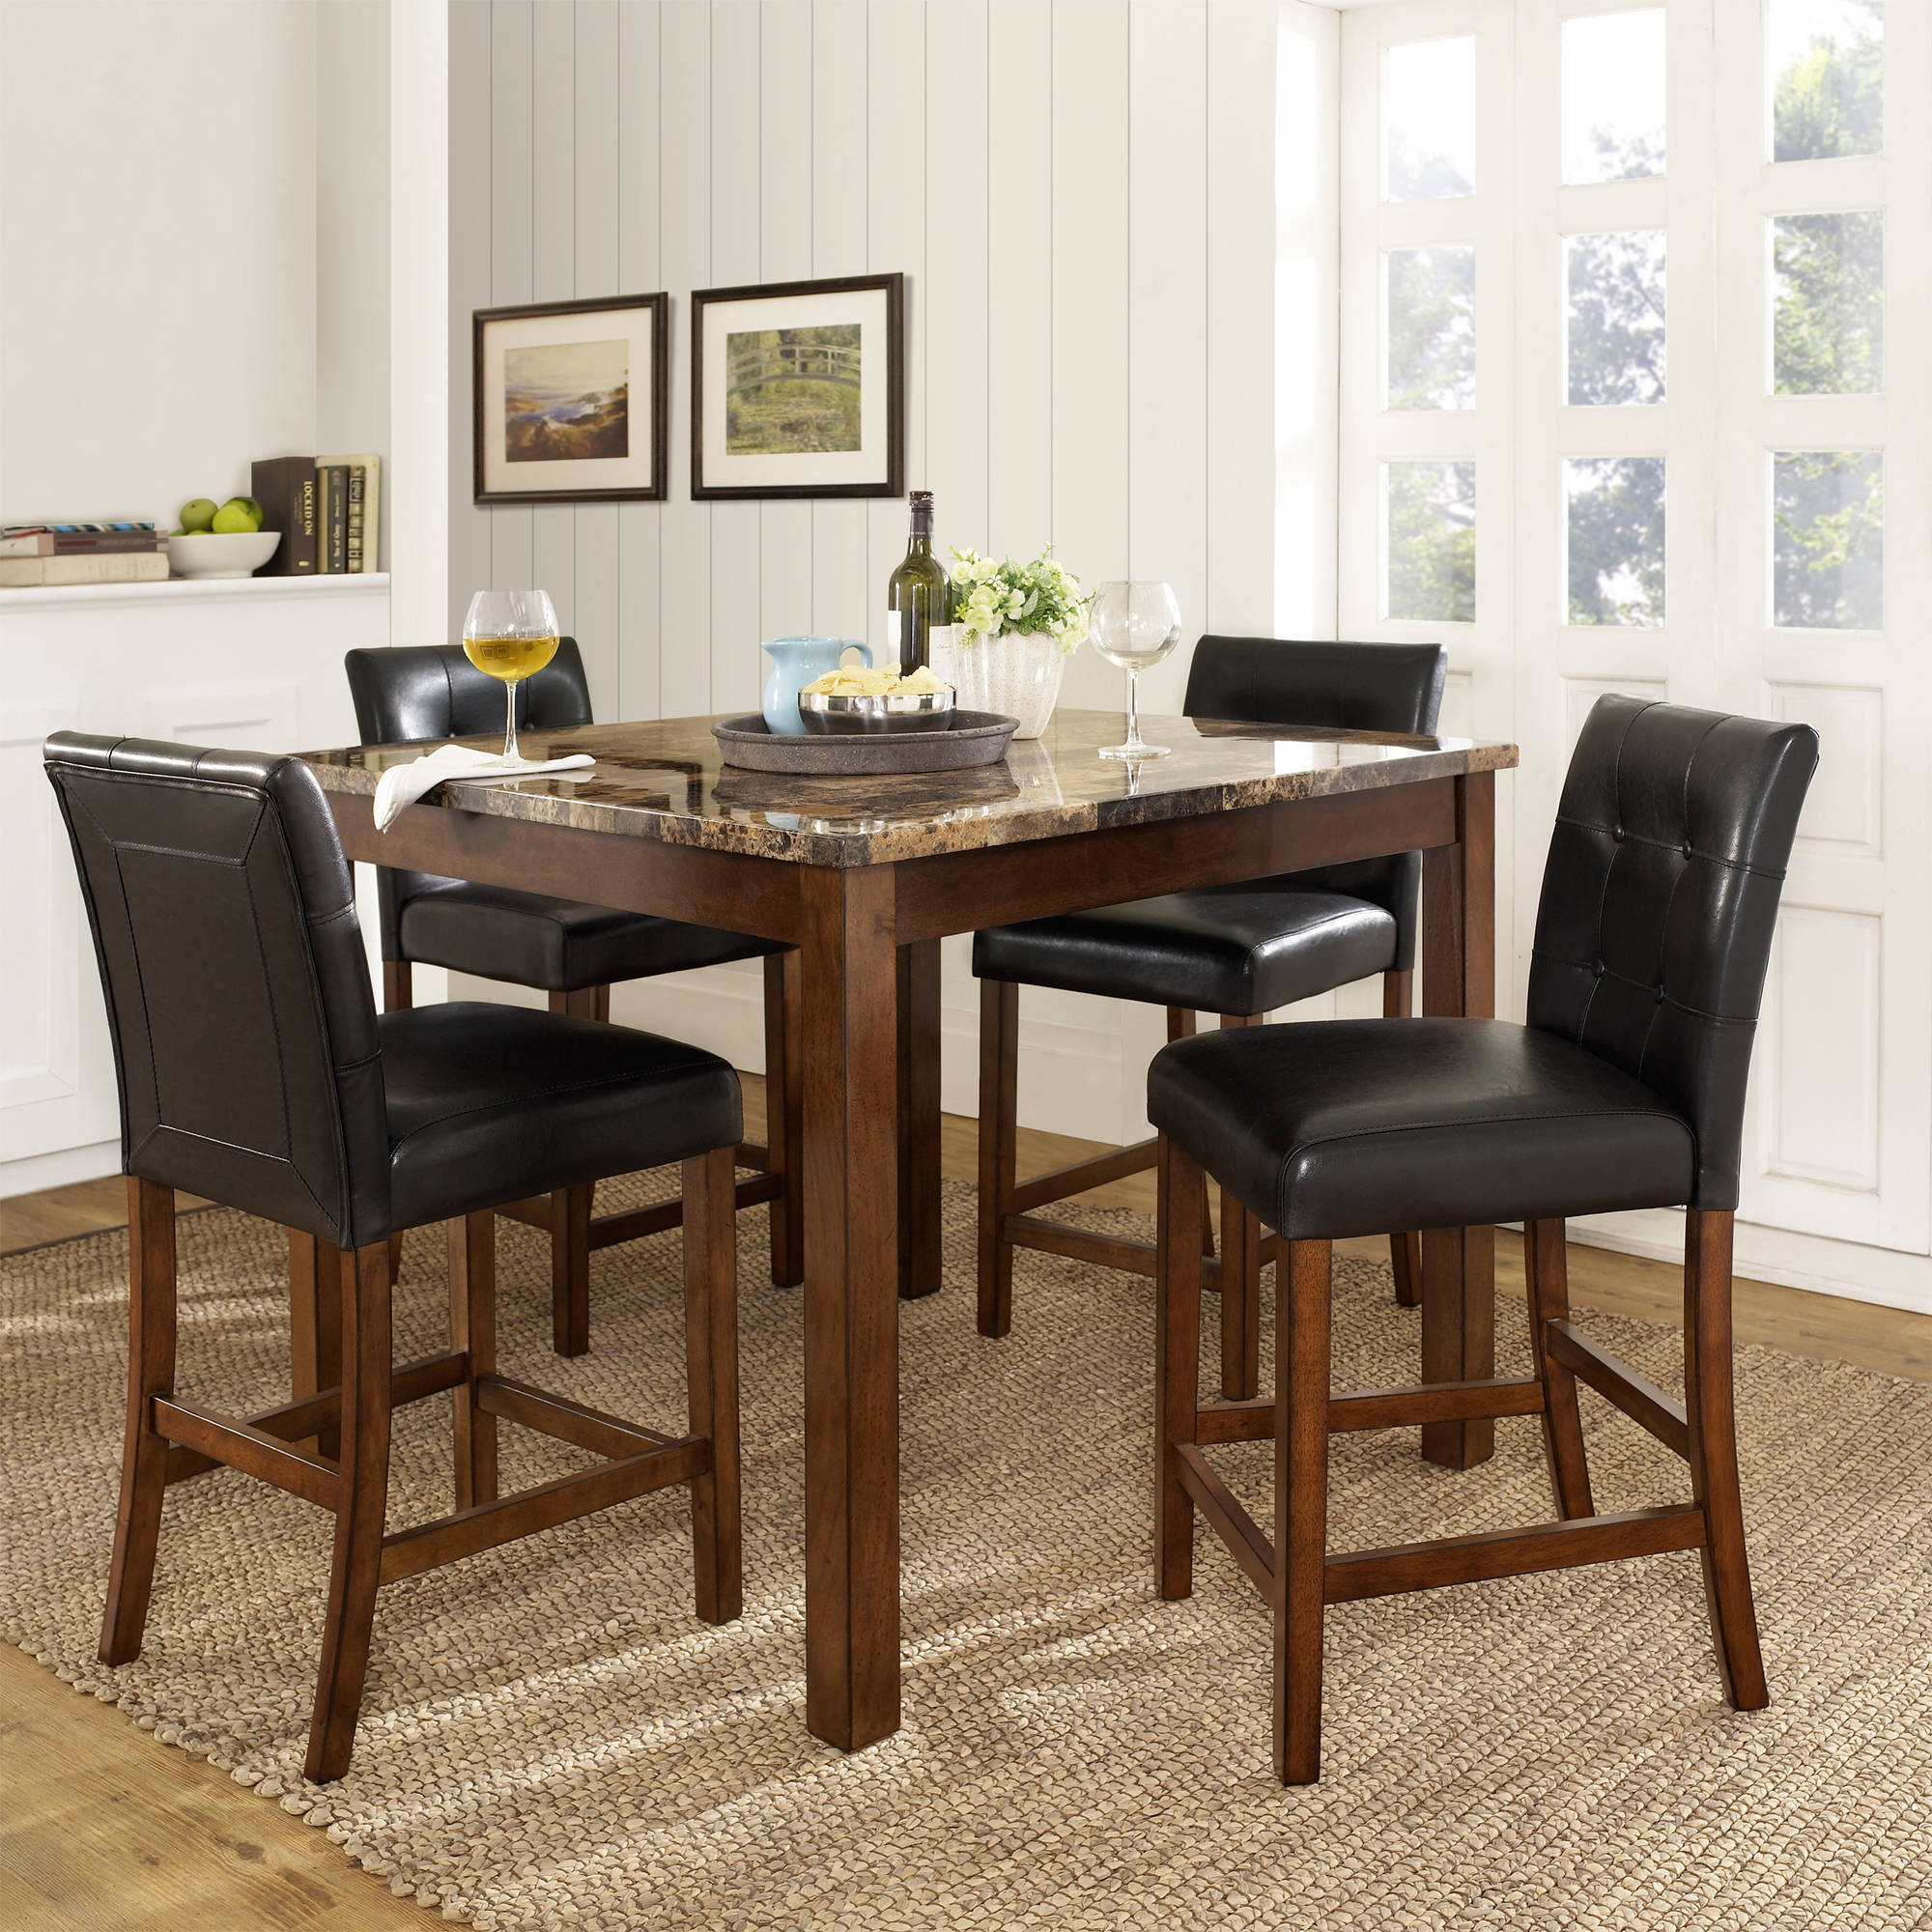 Kitchen  Dining Furniture Walmartcom - Cheap kitchen dining table and chairs